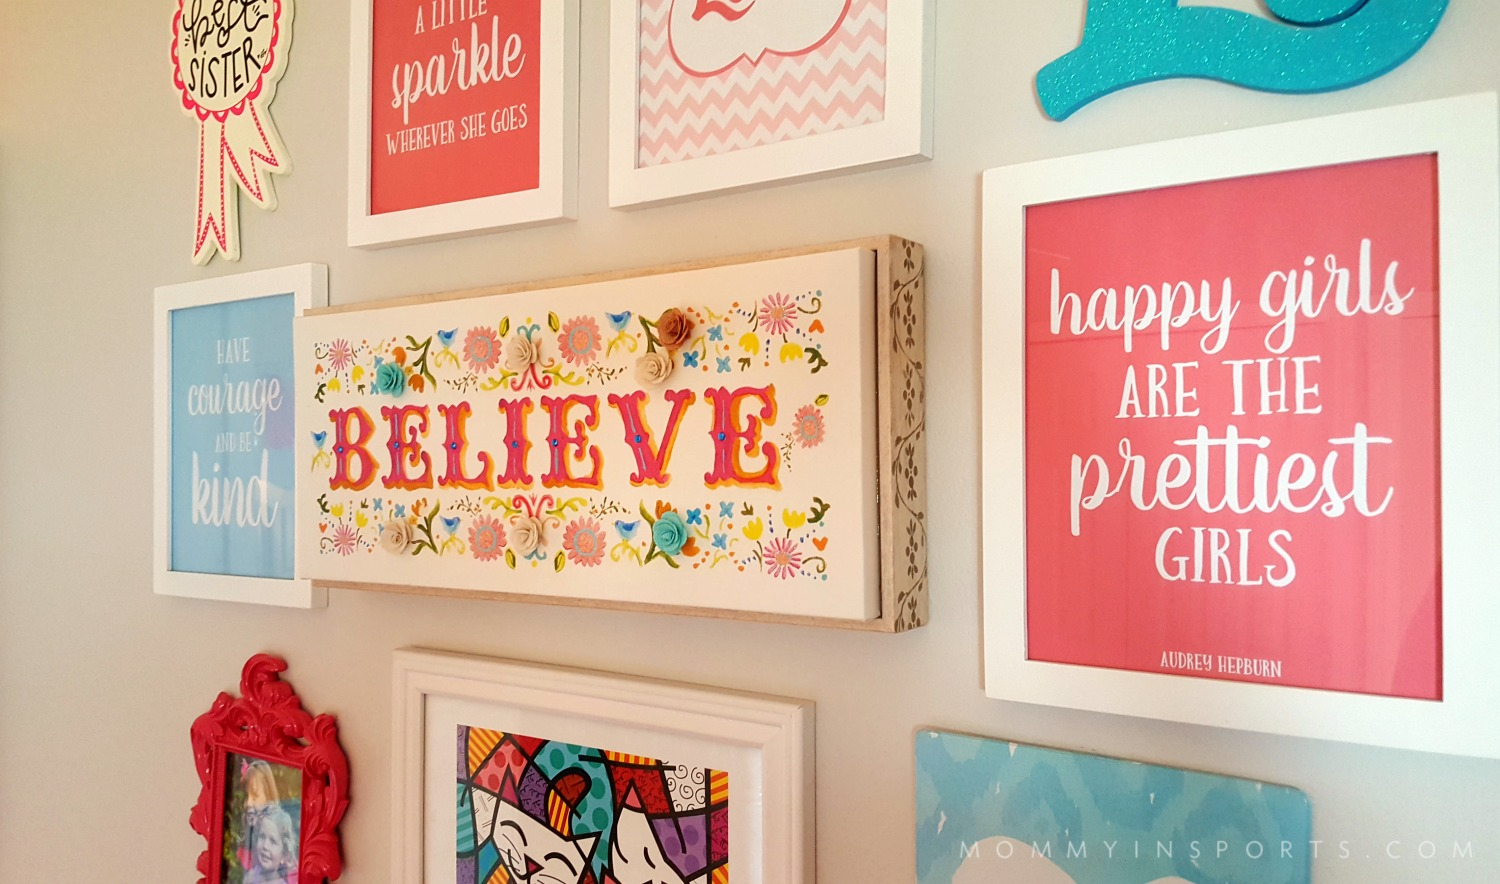 Is your daughter looking for a big girl room? Try this girl boss makeover with FREE quote printables! Perfect to inspire your budding tween!